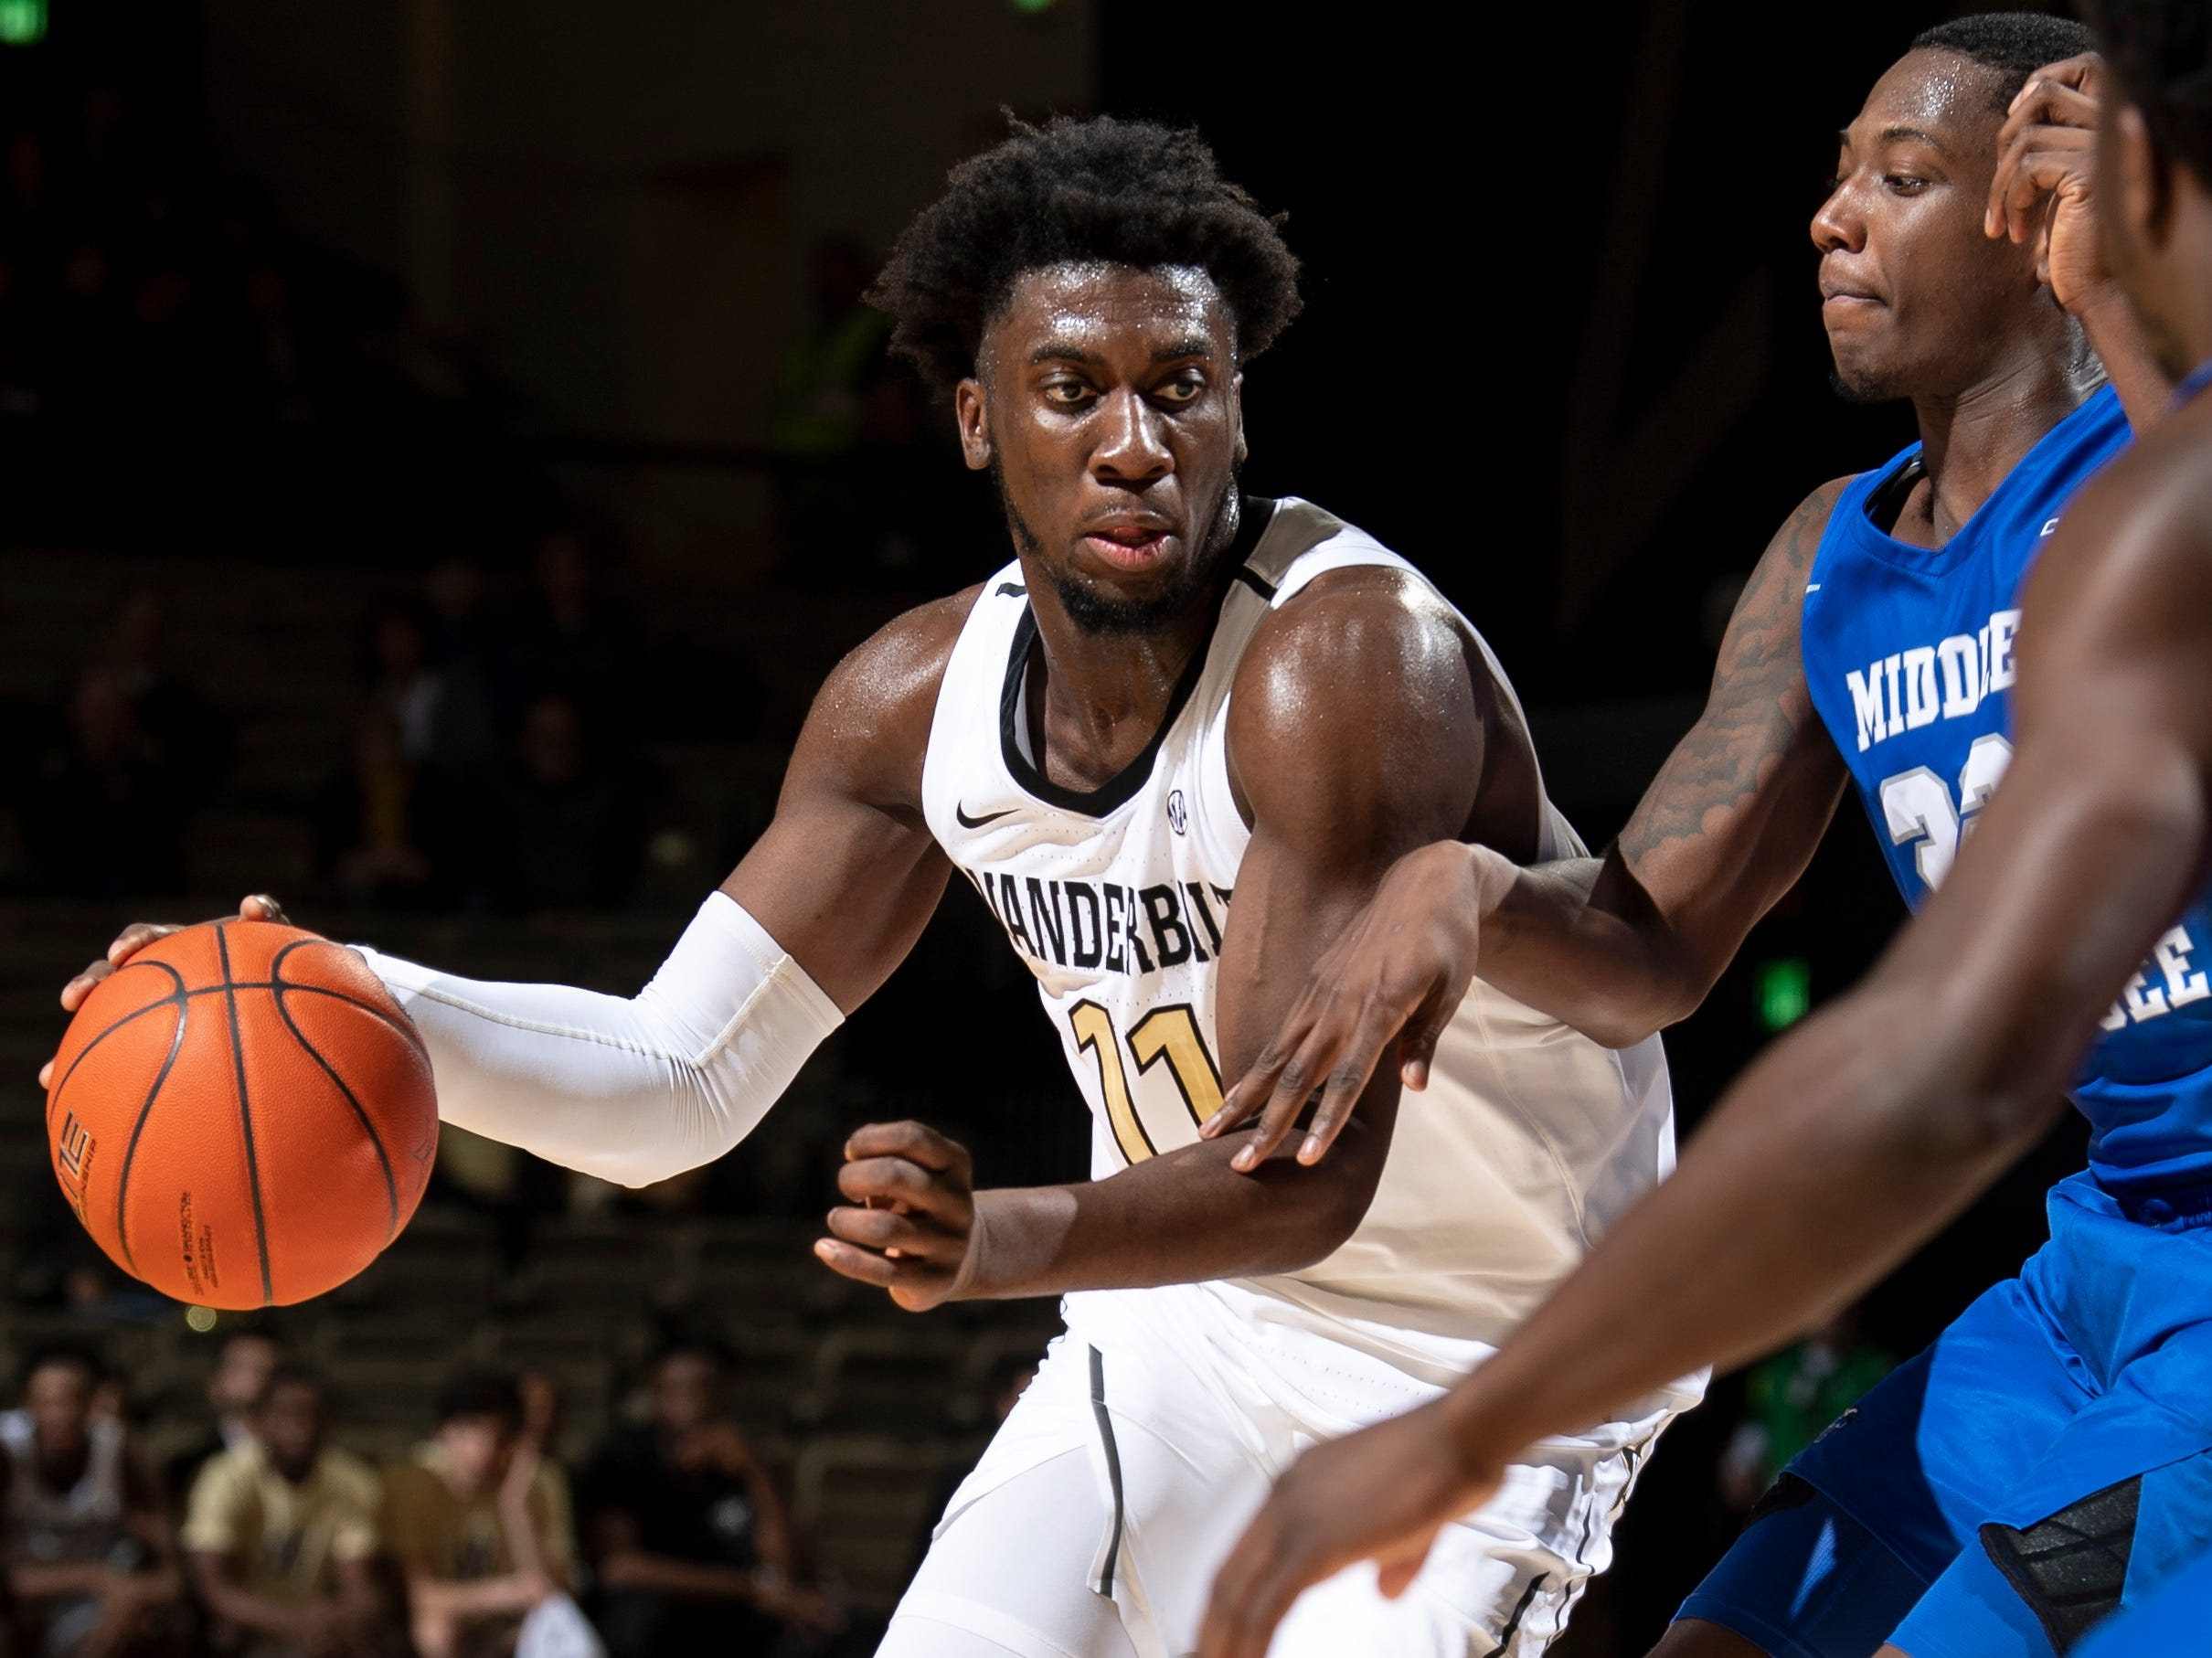 Vanderbilt forward Simisola Shittu (11) advances into MTSU forward Reggie Scurry (22) during the first half at Memorial Gym in Nashville, Tenn., Wednesday, Dec. 5, 2018.